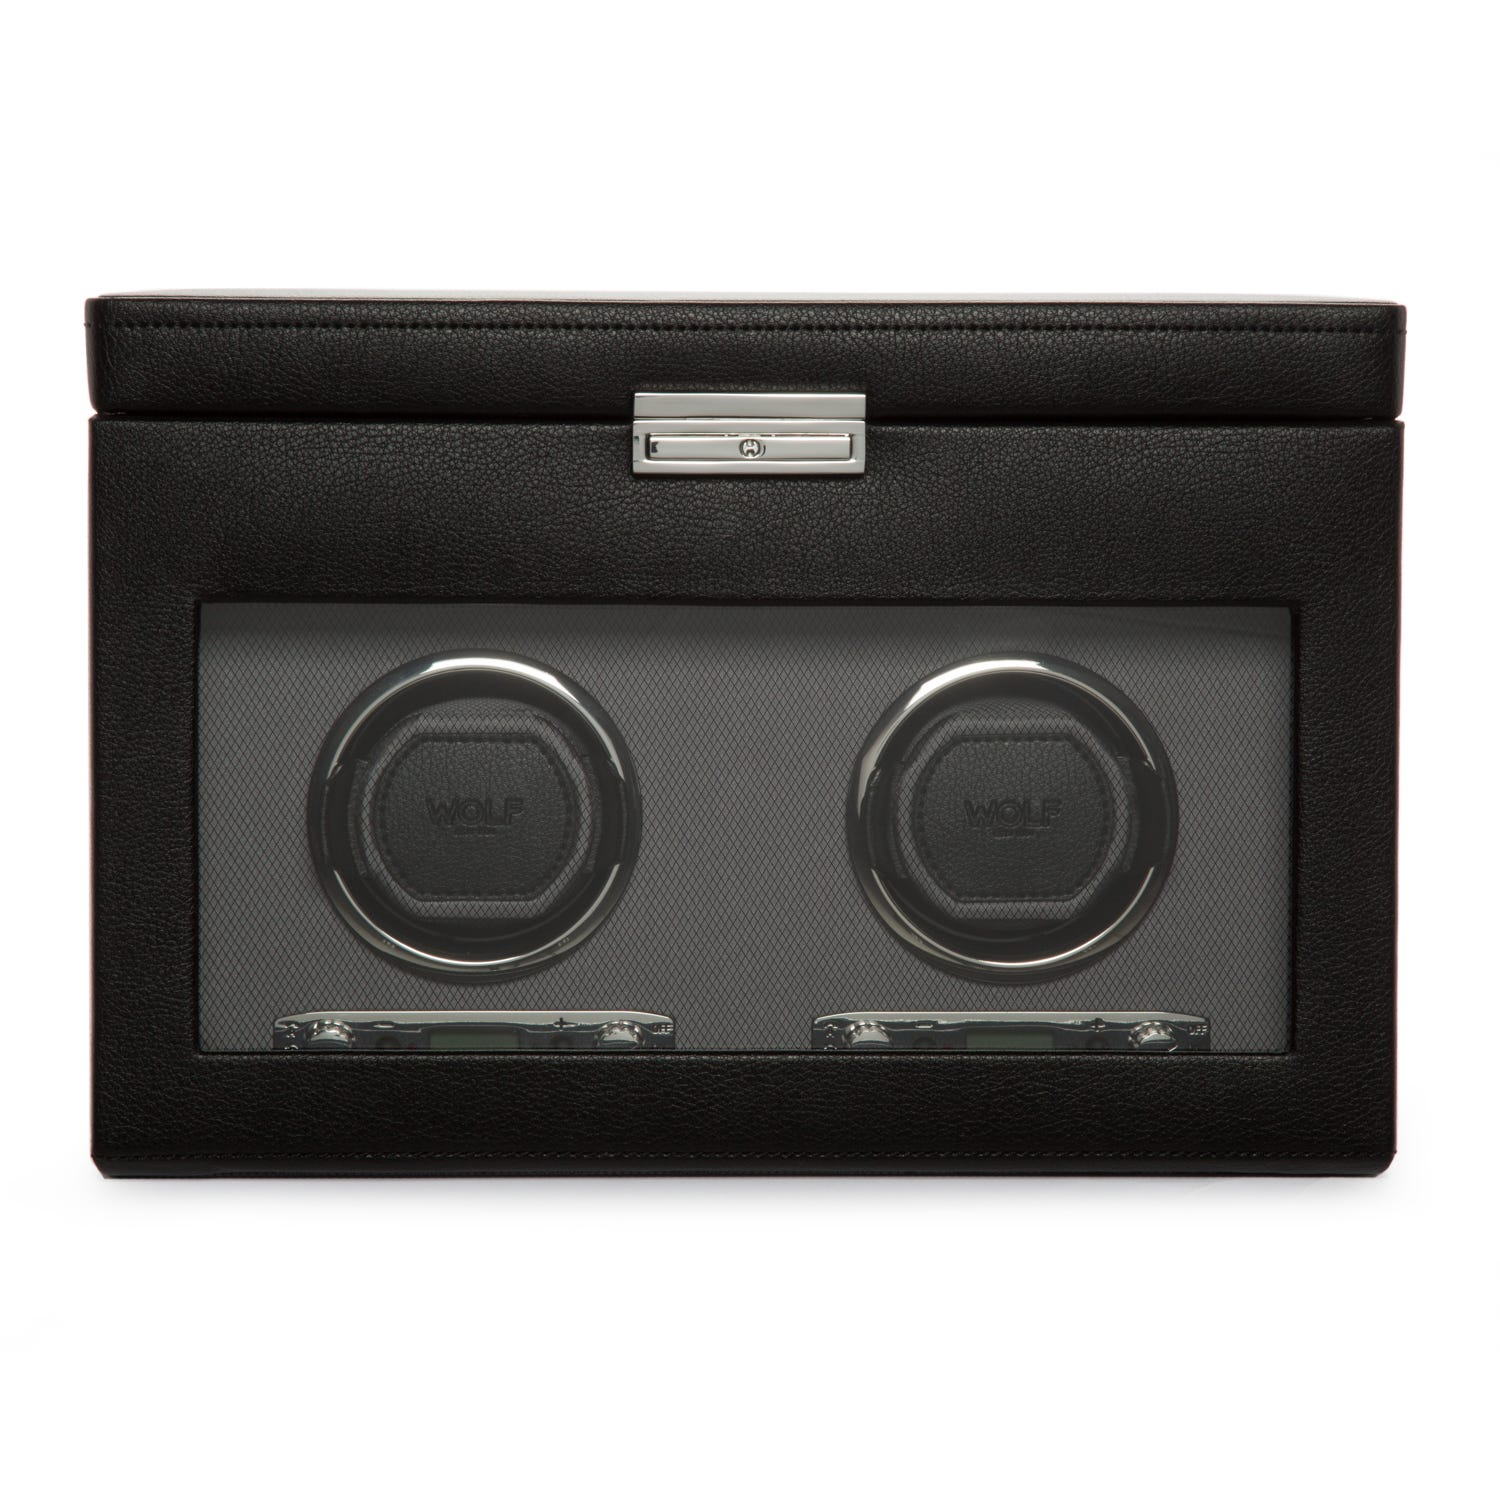 Black Viceroy Double Watch Winder with Storage